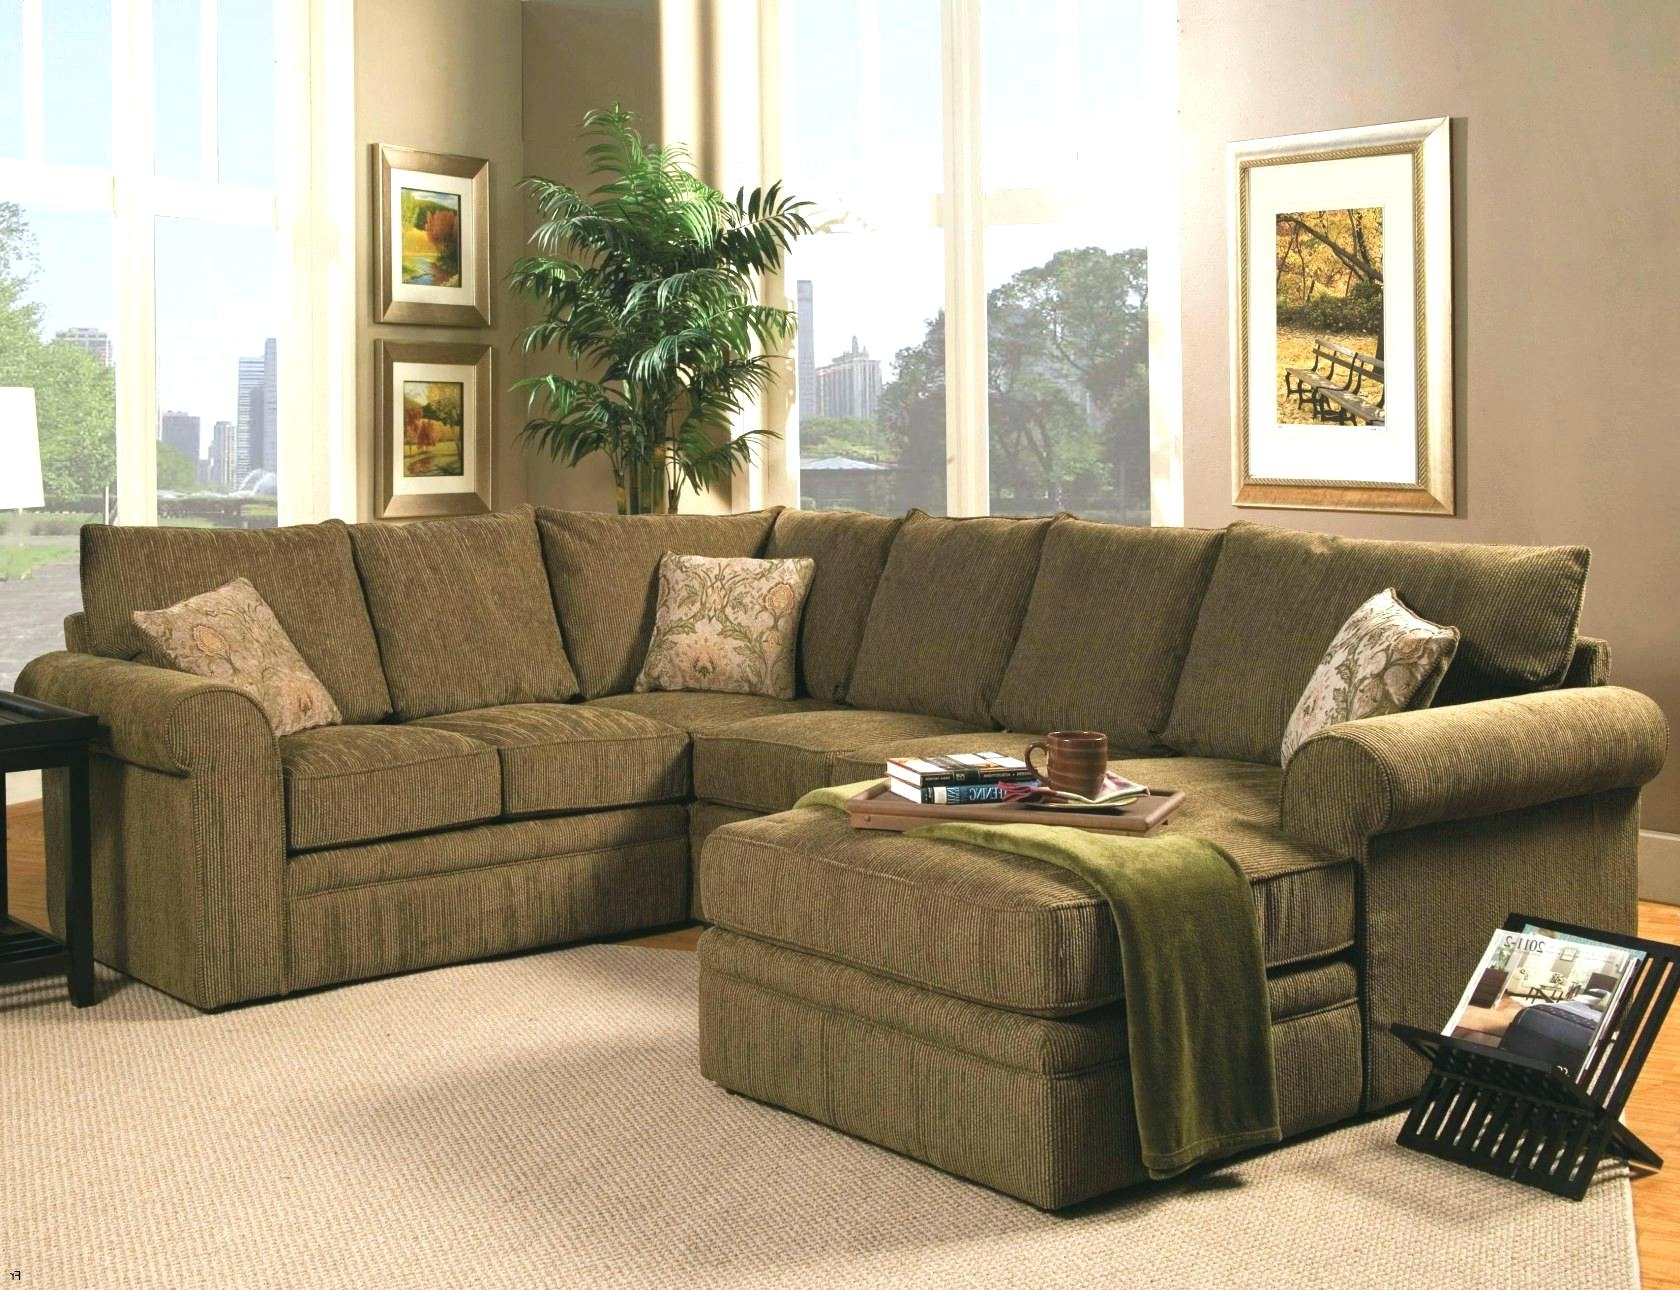 Green Sectional Sasage Sa With Chaise Teal Leather Couches For Intended For Most Up To Date Green Sectional Sofas With Chaise (View 4 of 20)